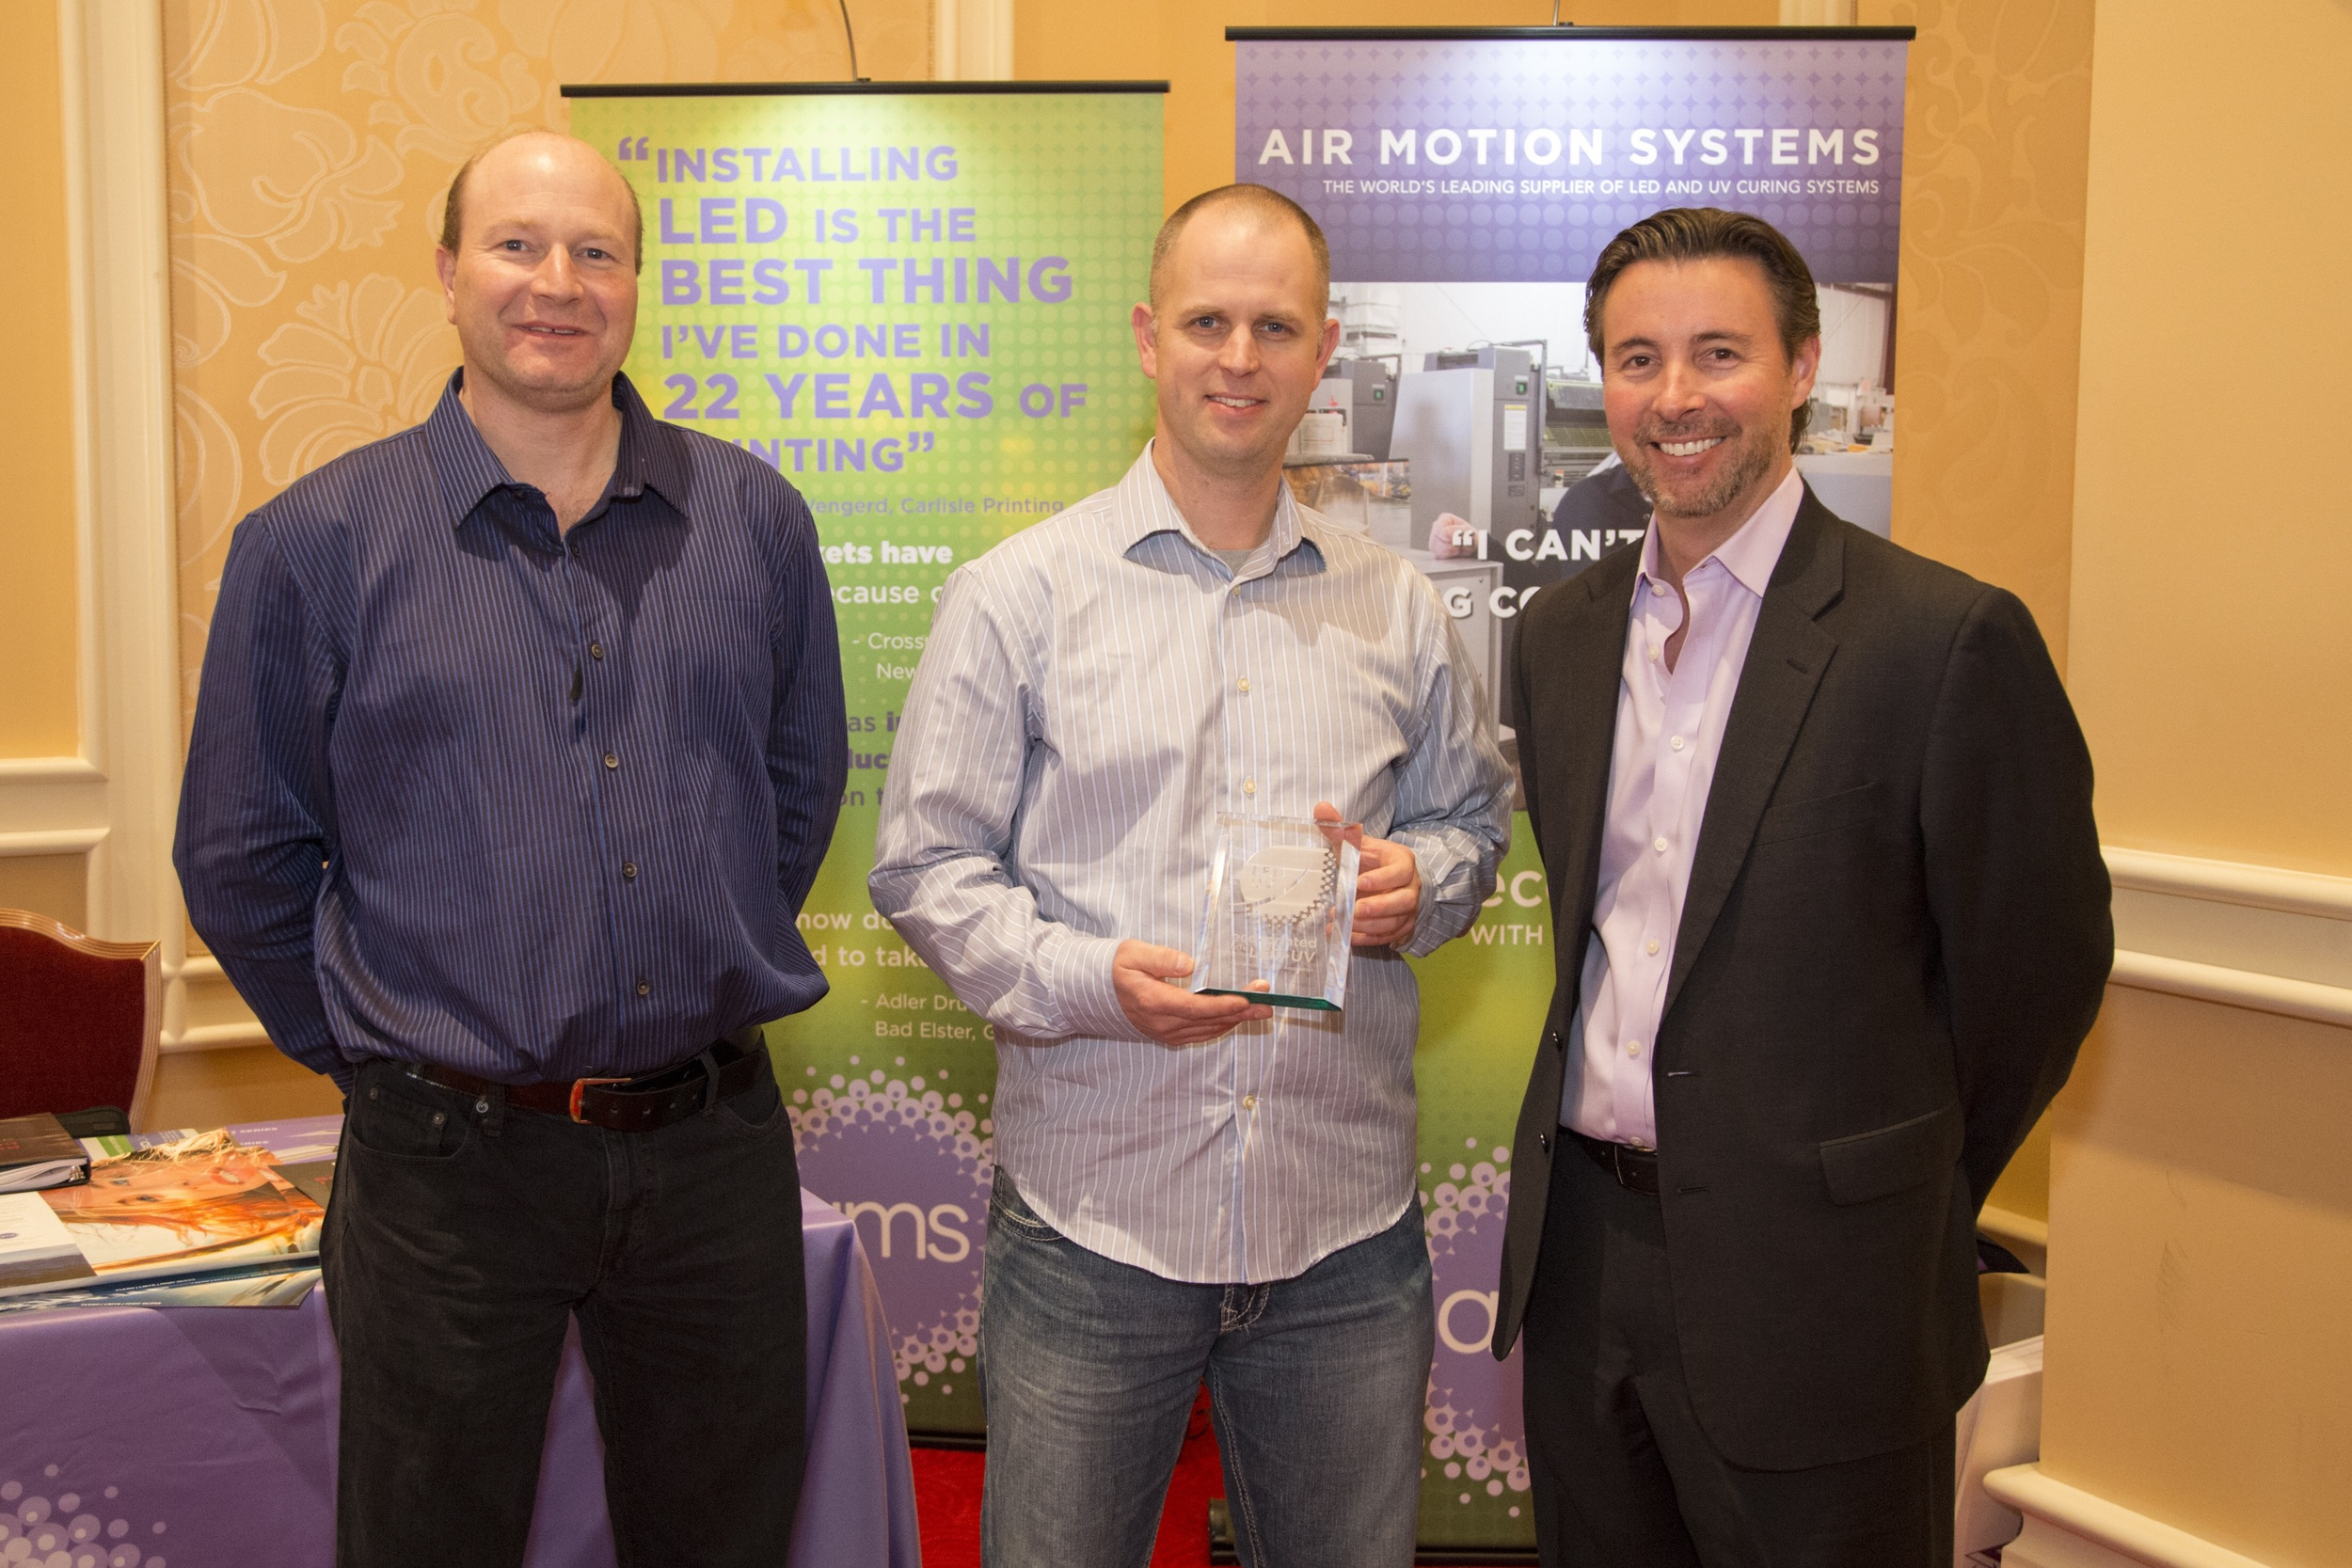 Pictured left to right are Steve Rathert and Jason Thysse of Thysse Printing Service, Inc. and Steve Metcalf of Air Motion Systems, Inc.   AMS